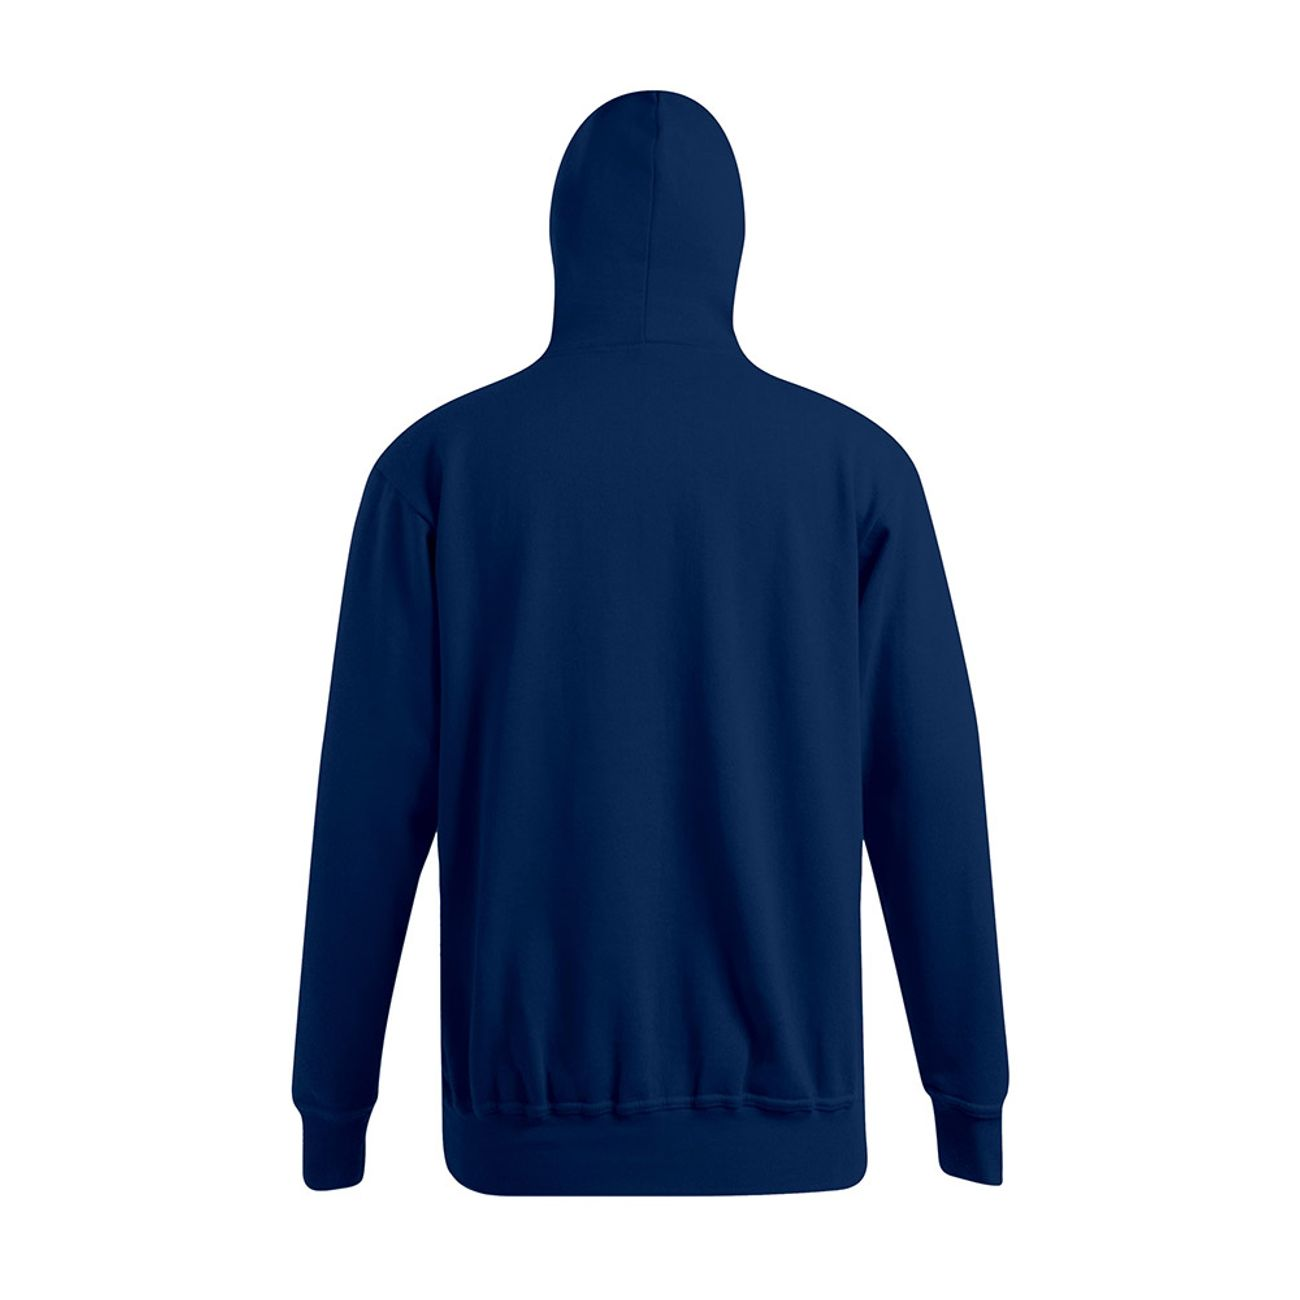 43c205a7d6095 sweat-a-capuche-grande-taille-homme-grande-taille 7 v1.jpeg